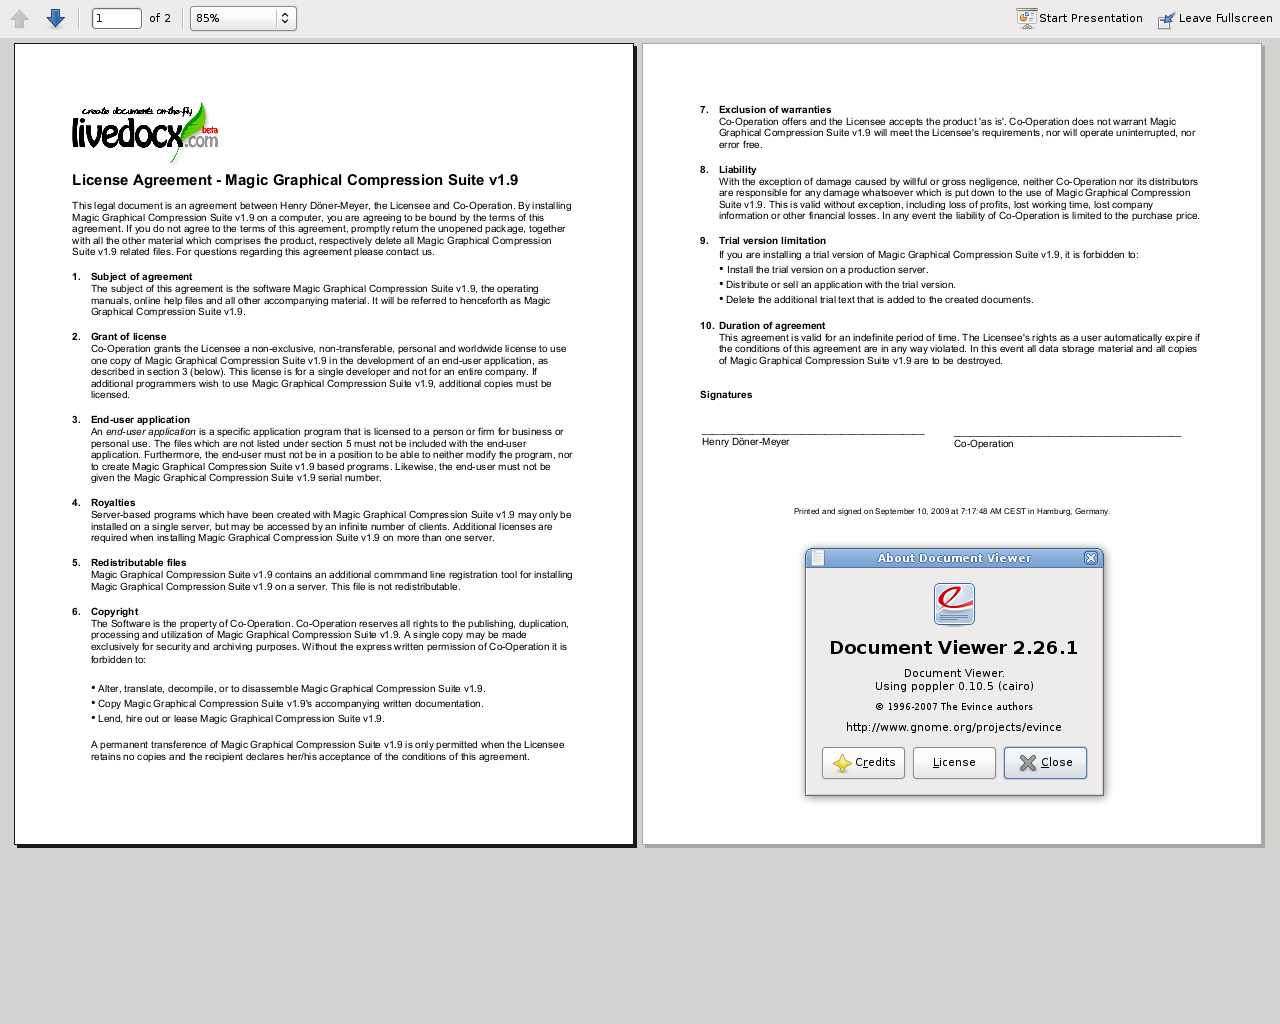 Software product documentation template development release note.